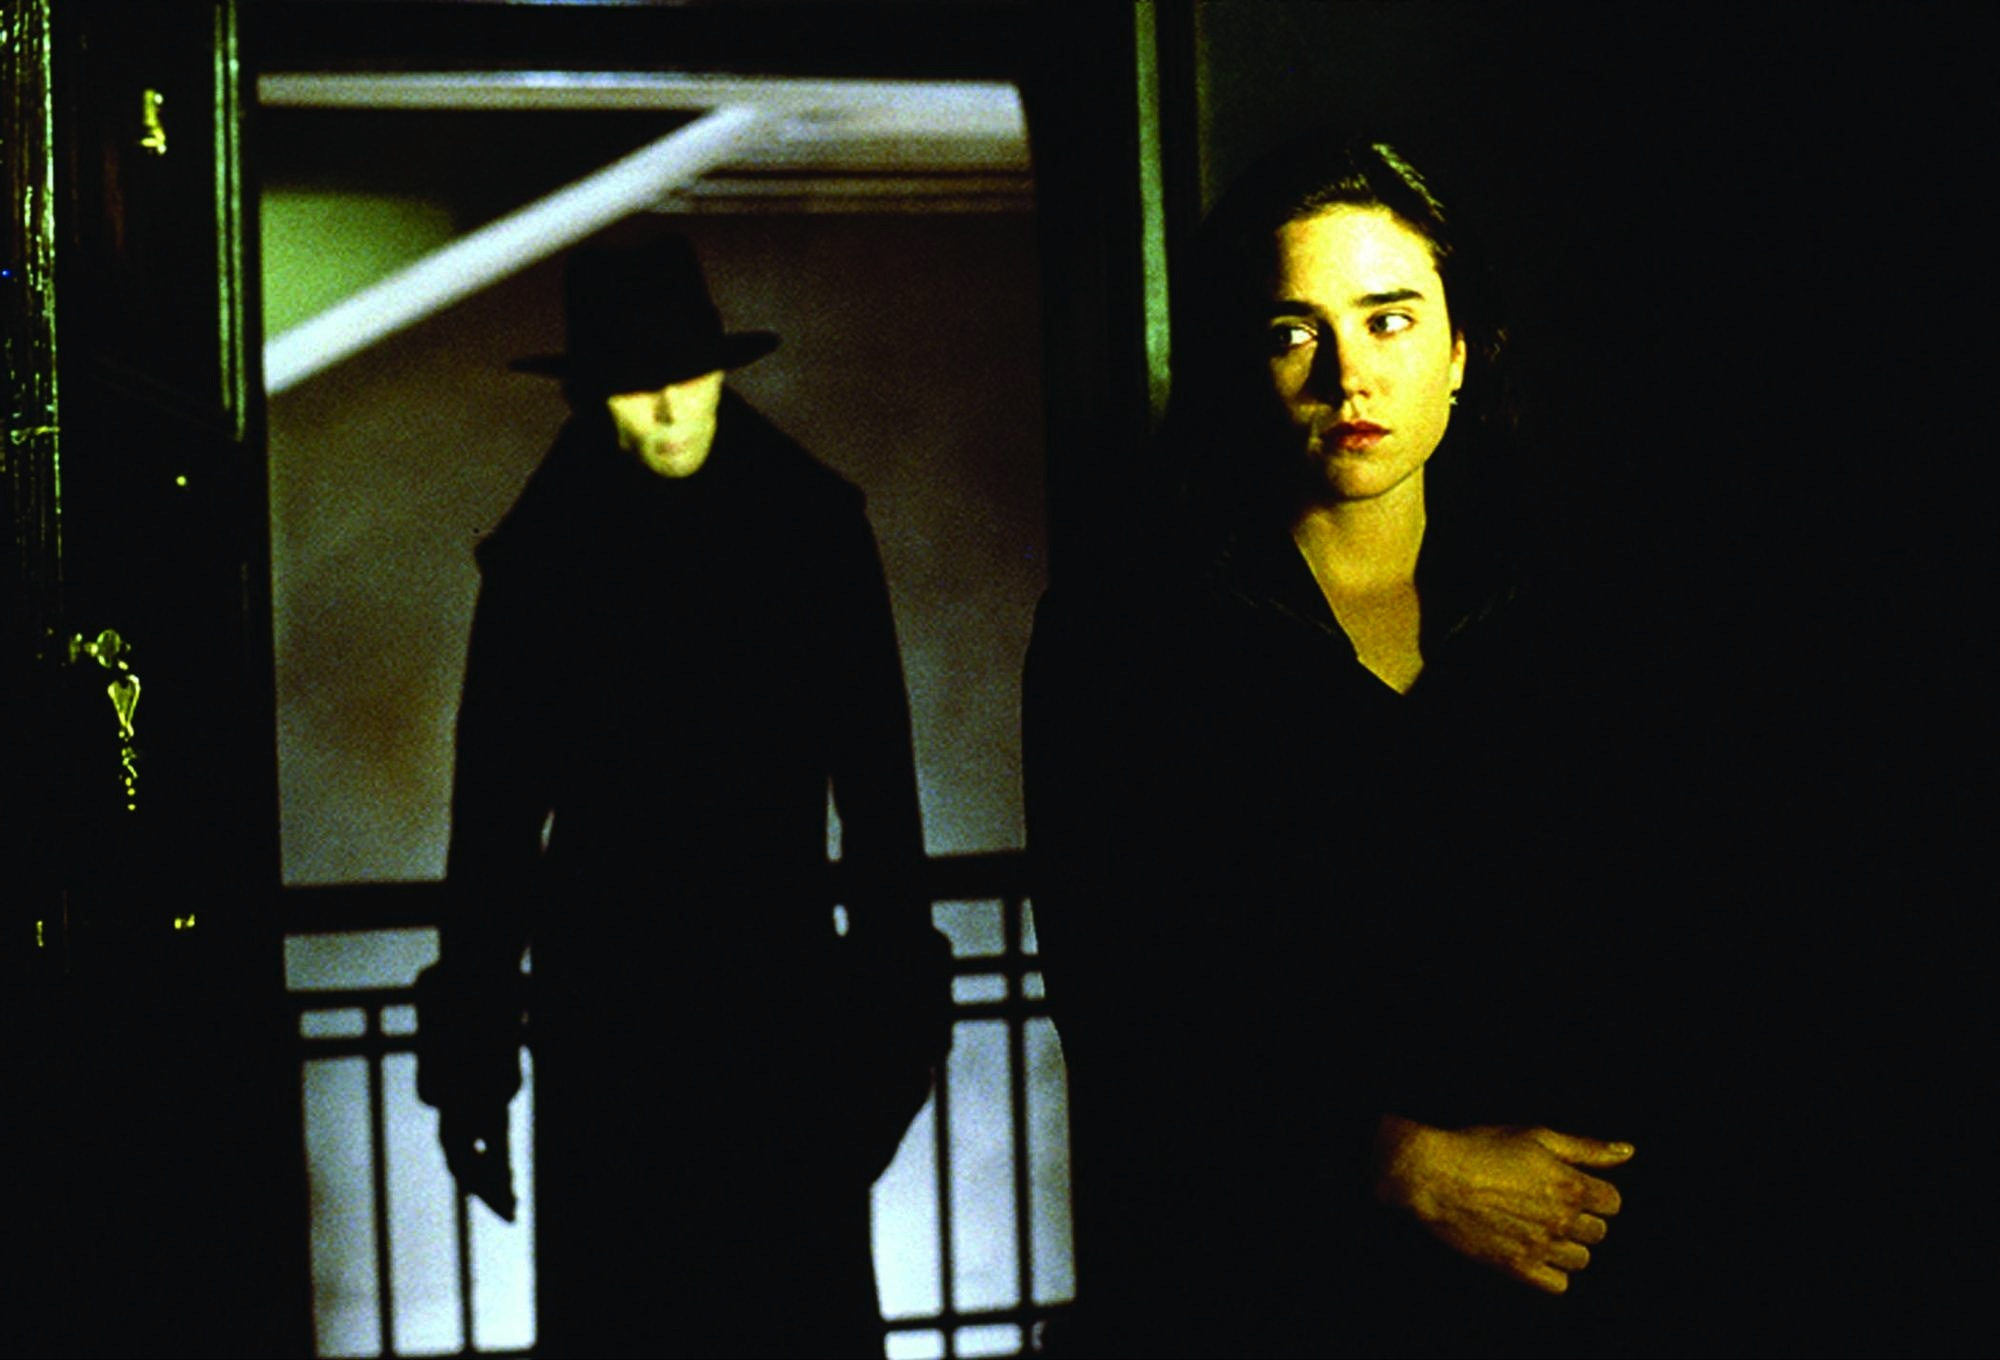 Jennifer Connelly and Richard O'Brien in Dark City (1998)